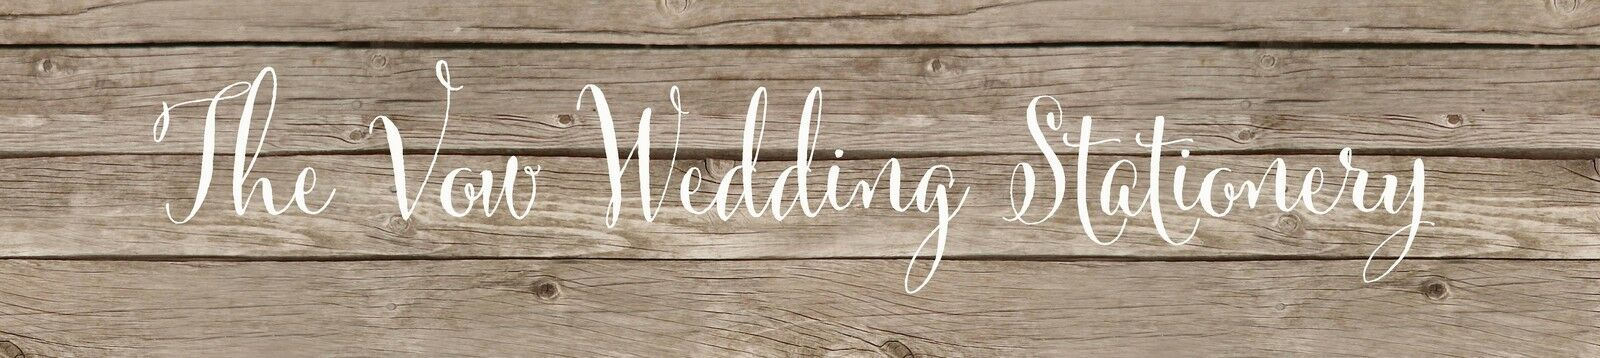 thevowweddingboutique